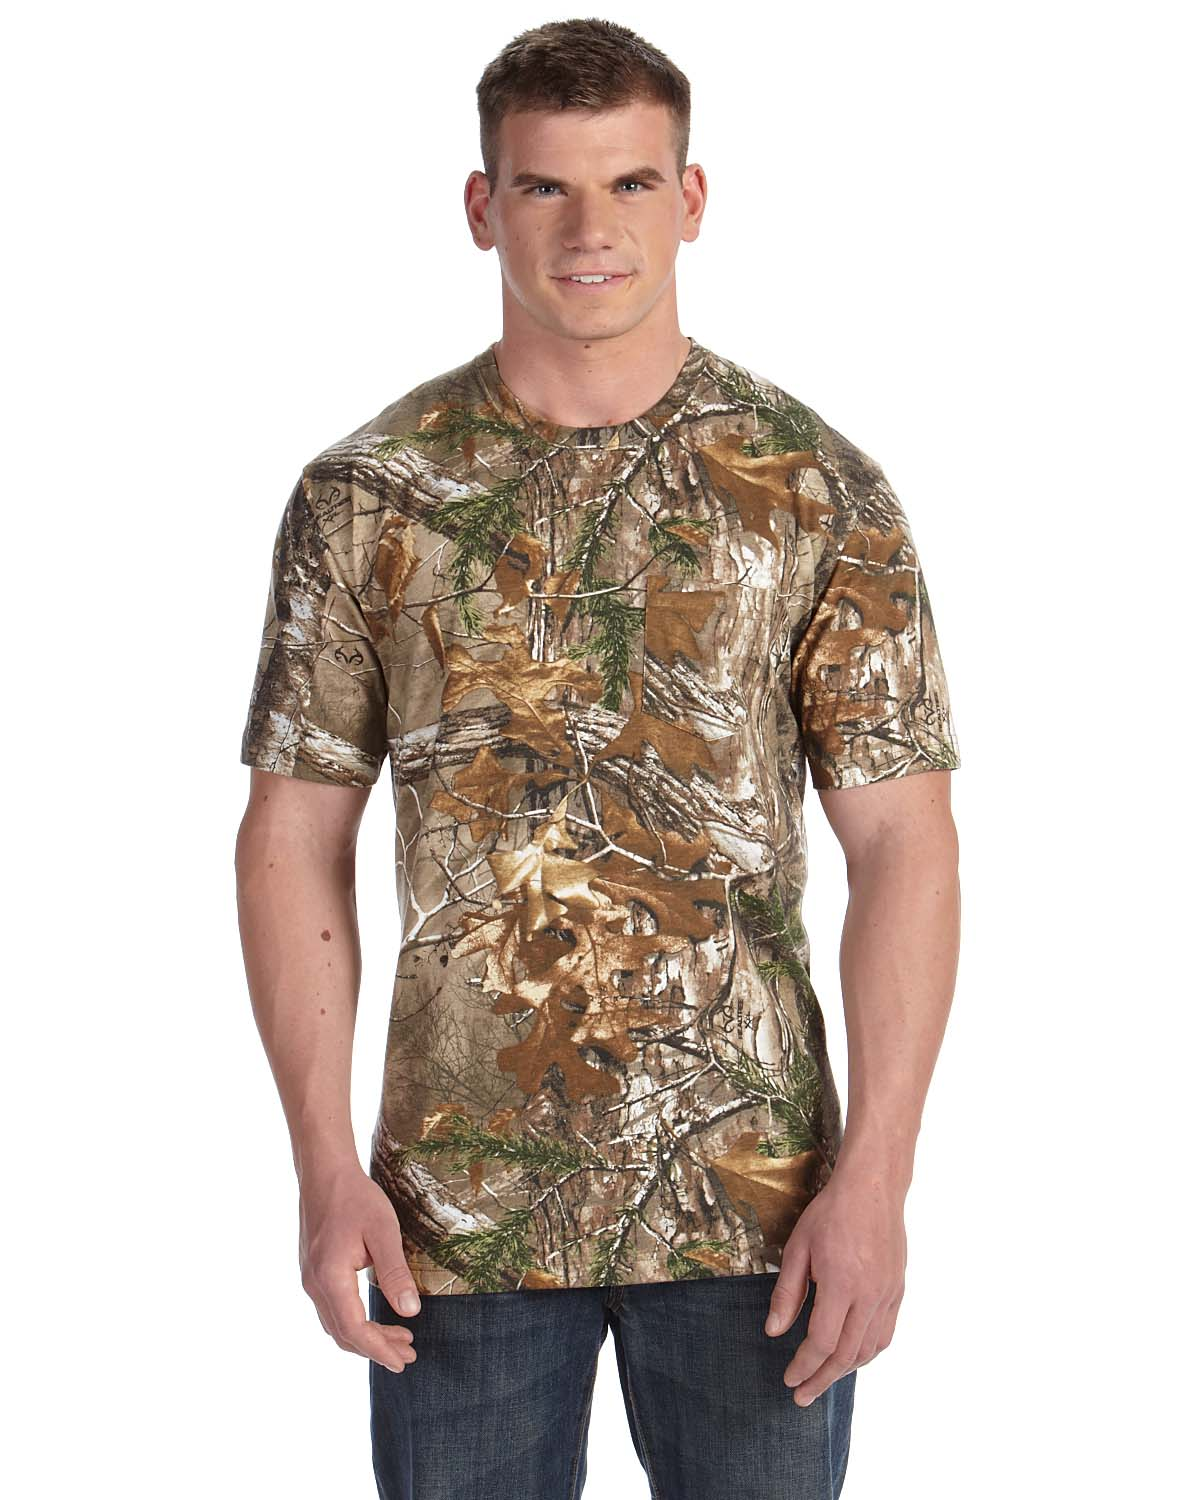 Code v 3982 realtree camouflage pocket t shirt shirtmax for Gildan camouflage t shirts